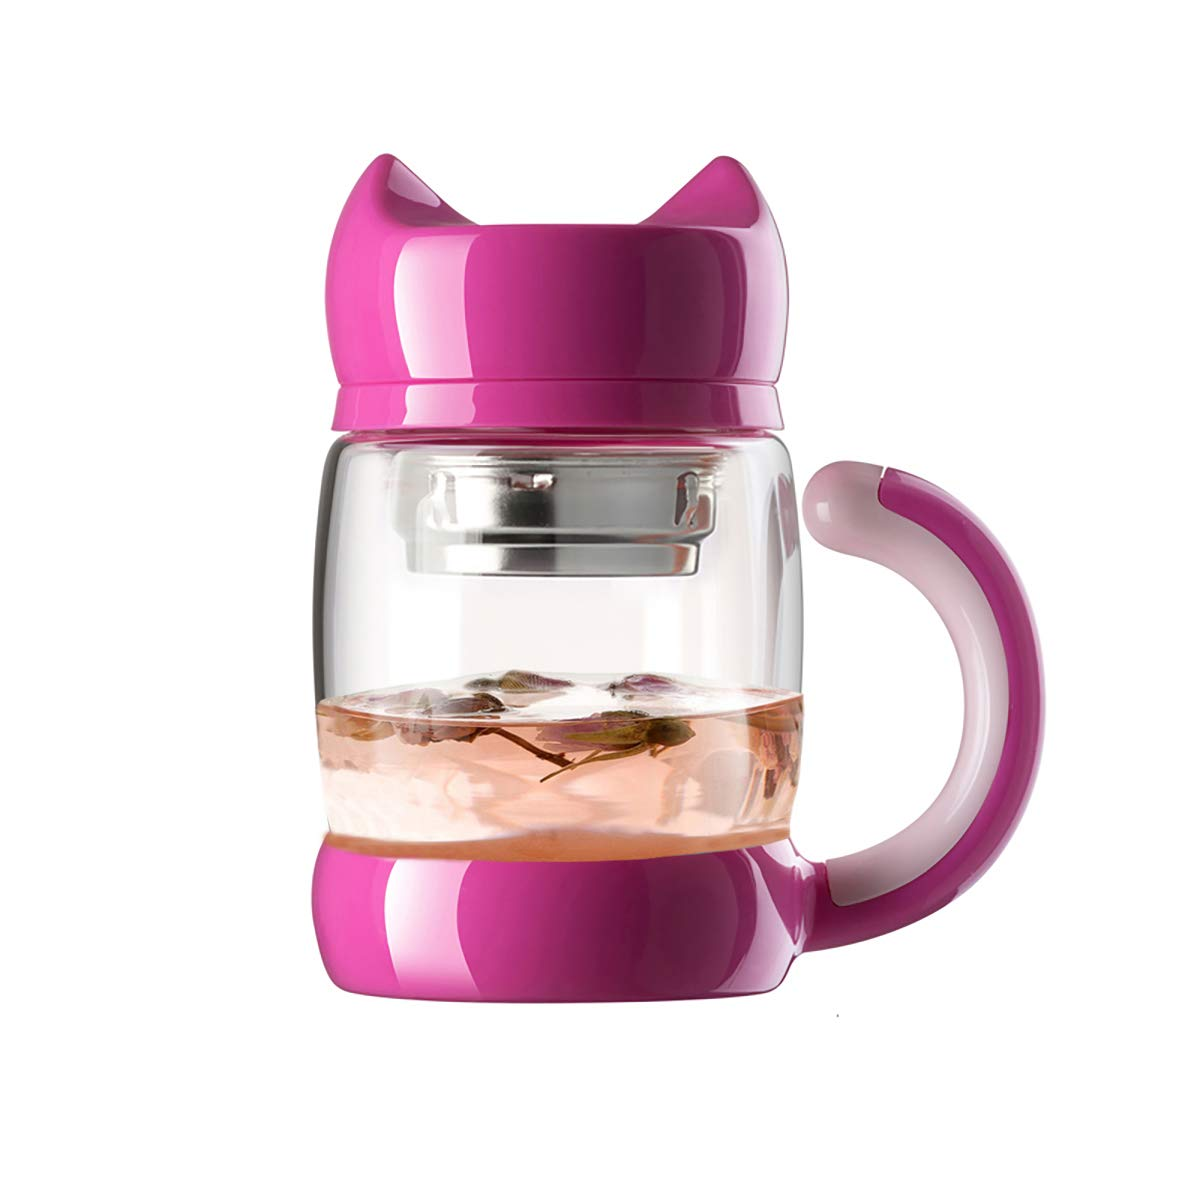 Cute Cat Tea Cups with Strainer/Infuser - 420 ml / 14 oz Portable Heat Resistant Glass Cat Tail Tea/Coffee Mugs - Best Gift for Tea/Cat lovers (pink)